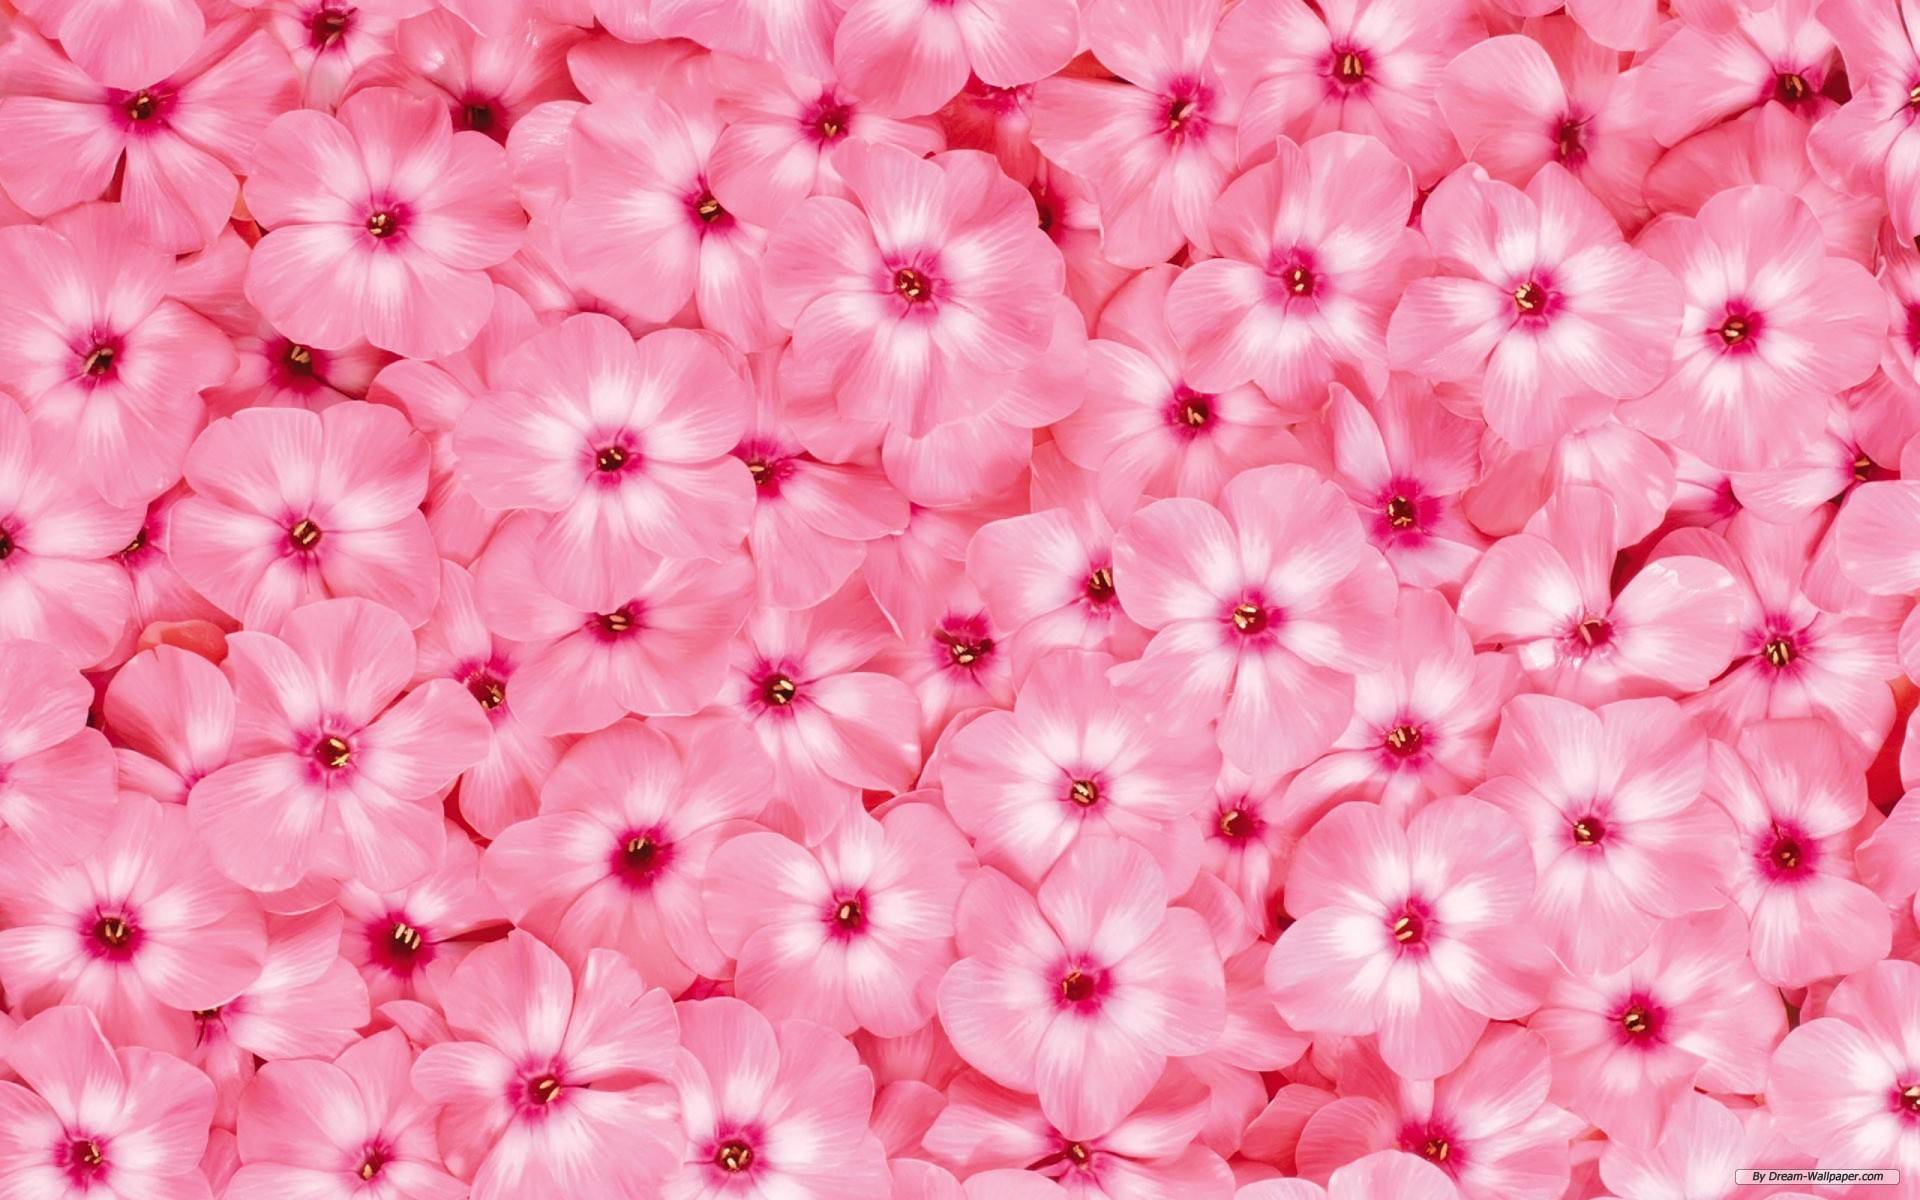 Wallpaper   Flower wallpaper   Beautiful Flower wallpaper 1920x1200